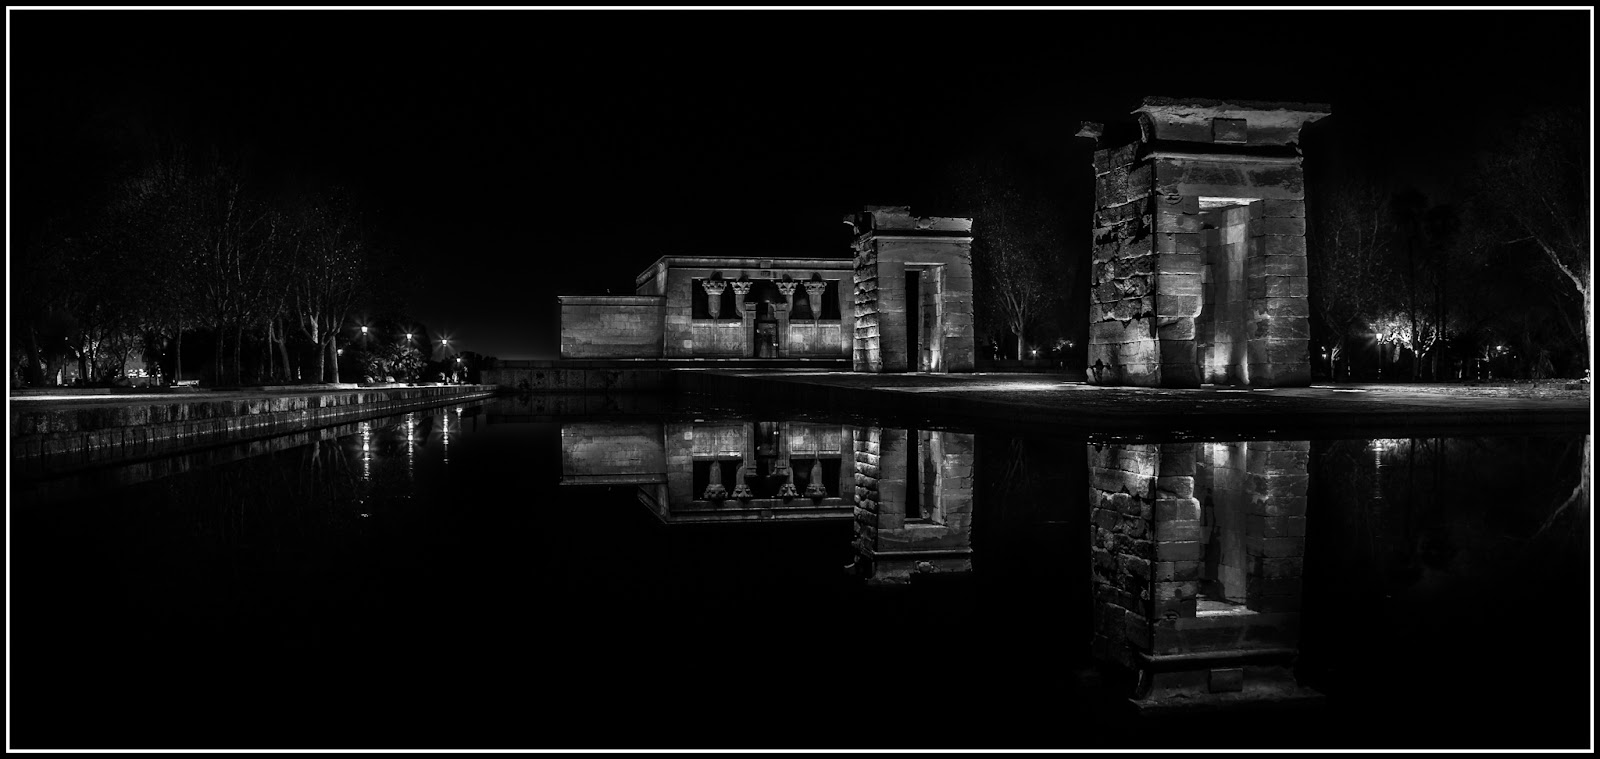 Debod en HDR :: HDR x Canon EOS 5D MkIII | ISO100 | Canon 17-40@28mm | f/8.0 | 1/25s, 1/6s, 0.6s, 10s, 30s | Trípode